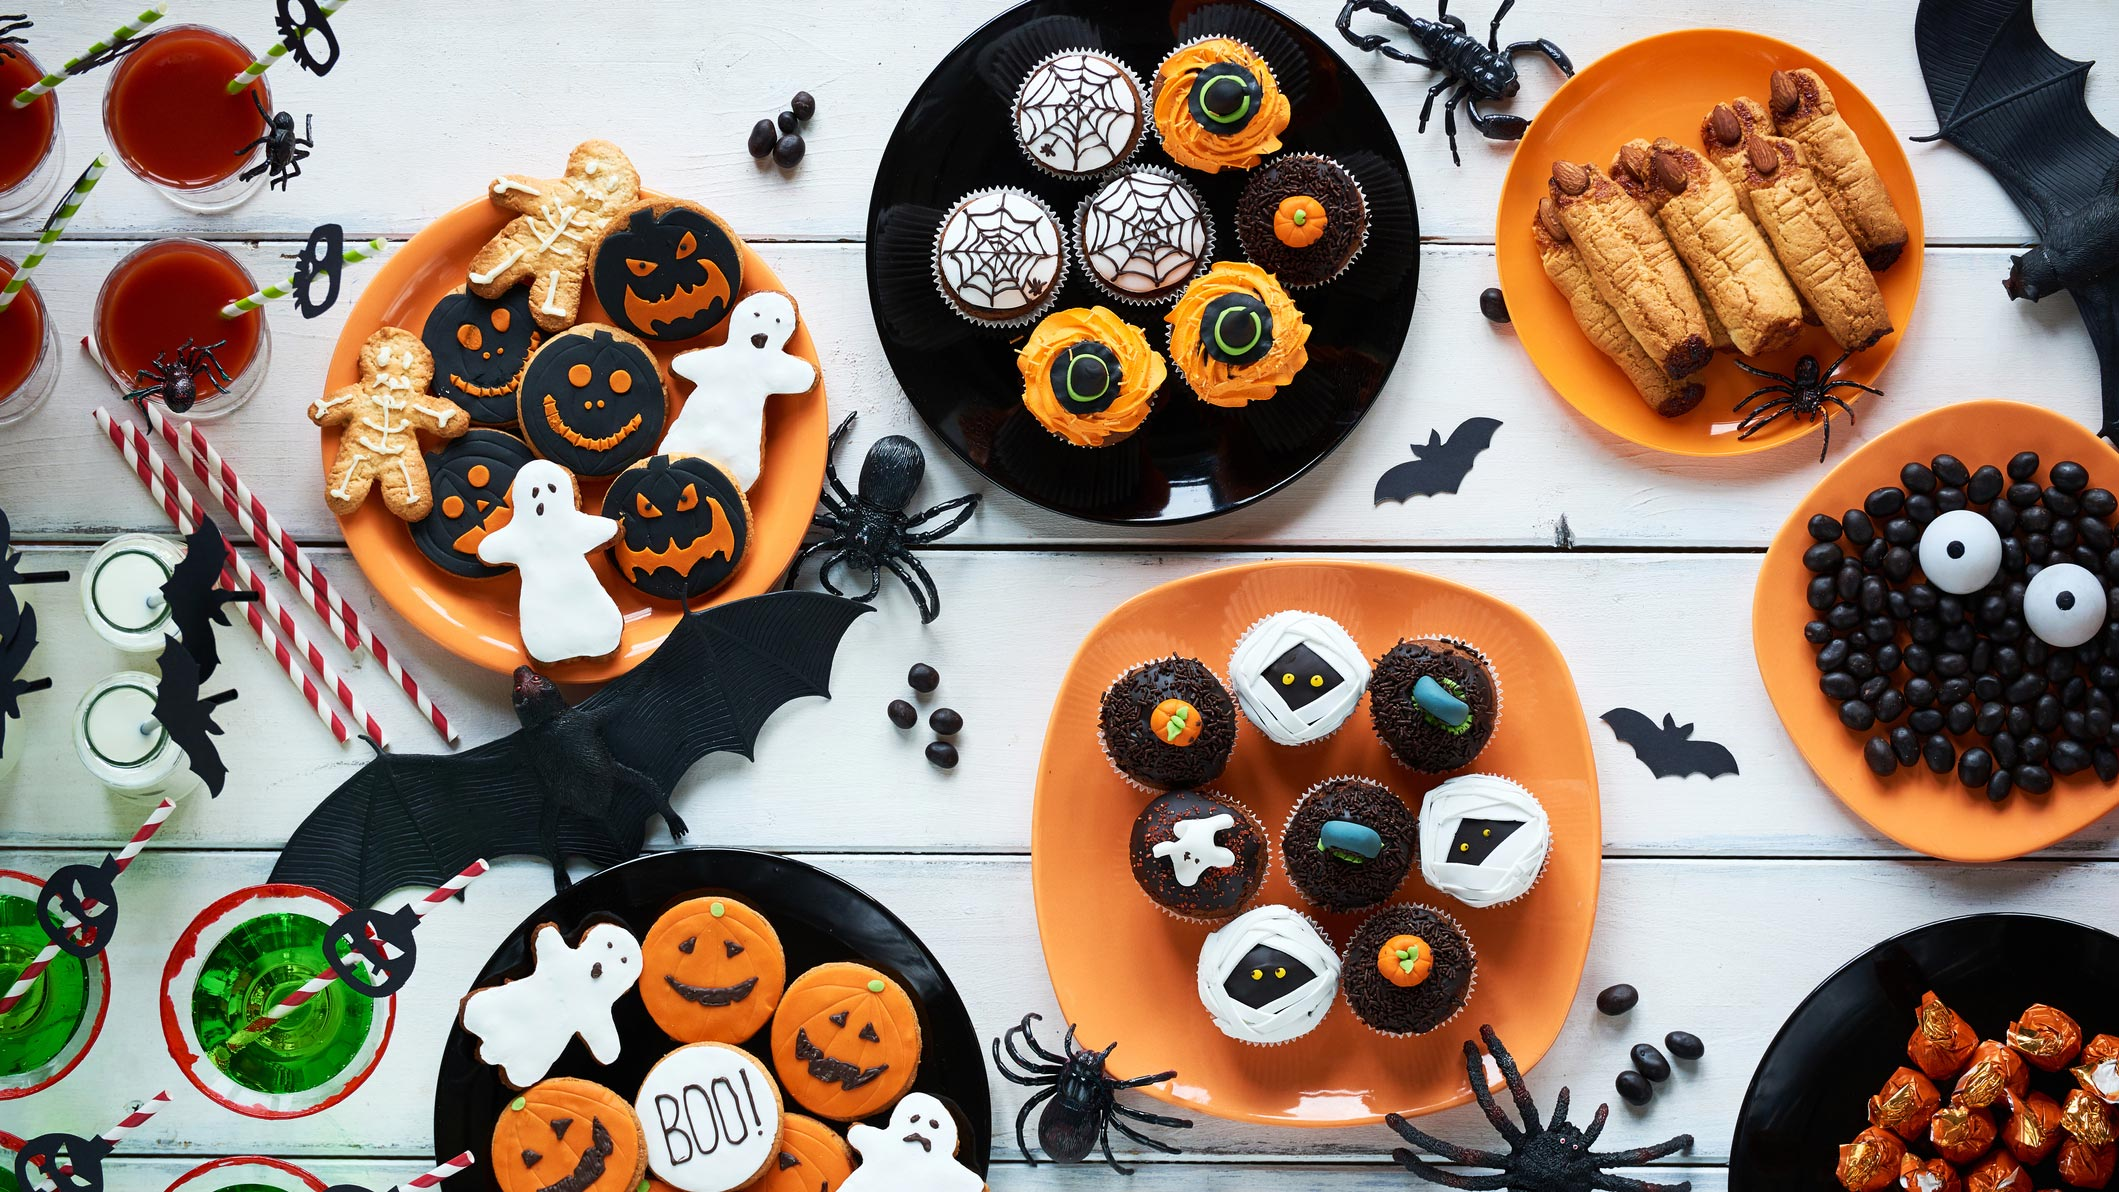 WATCH Top 10 Halloween Food Ideas Videos , Parentology